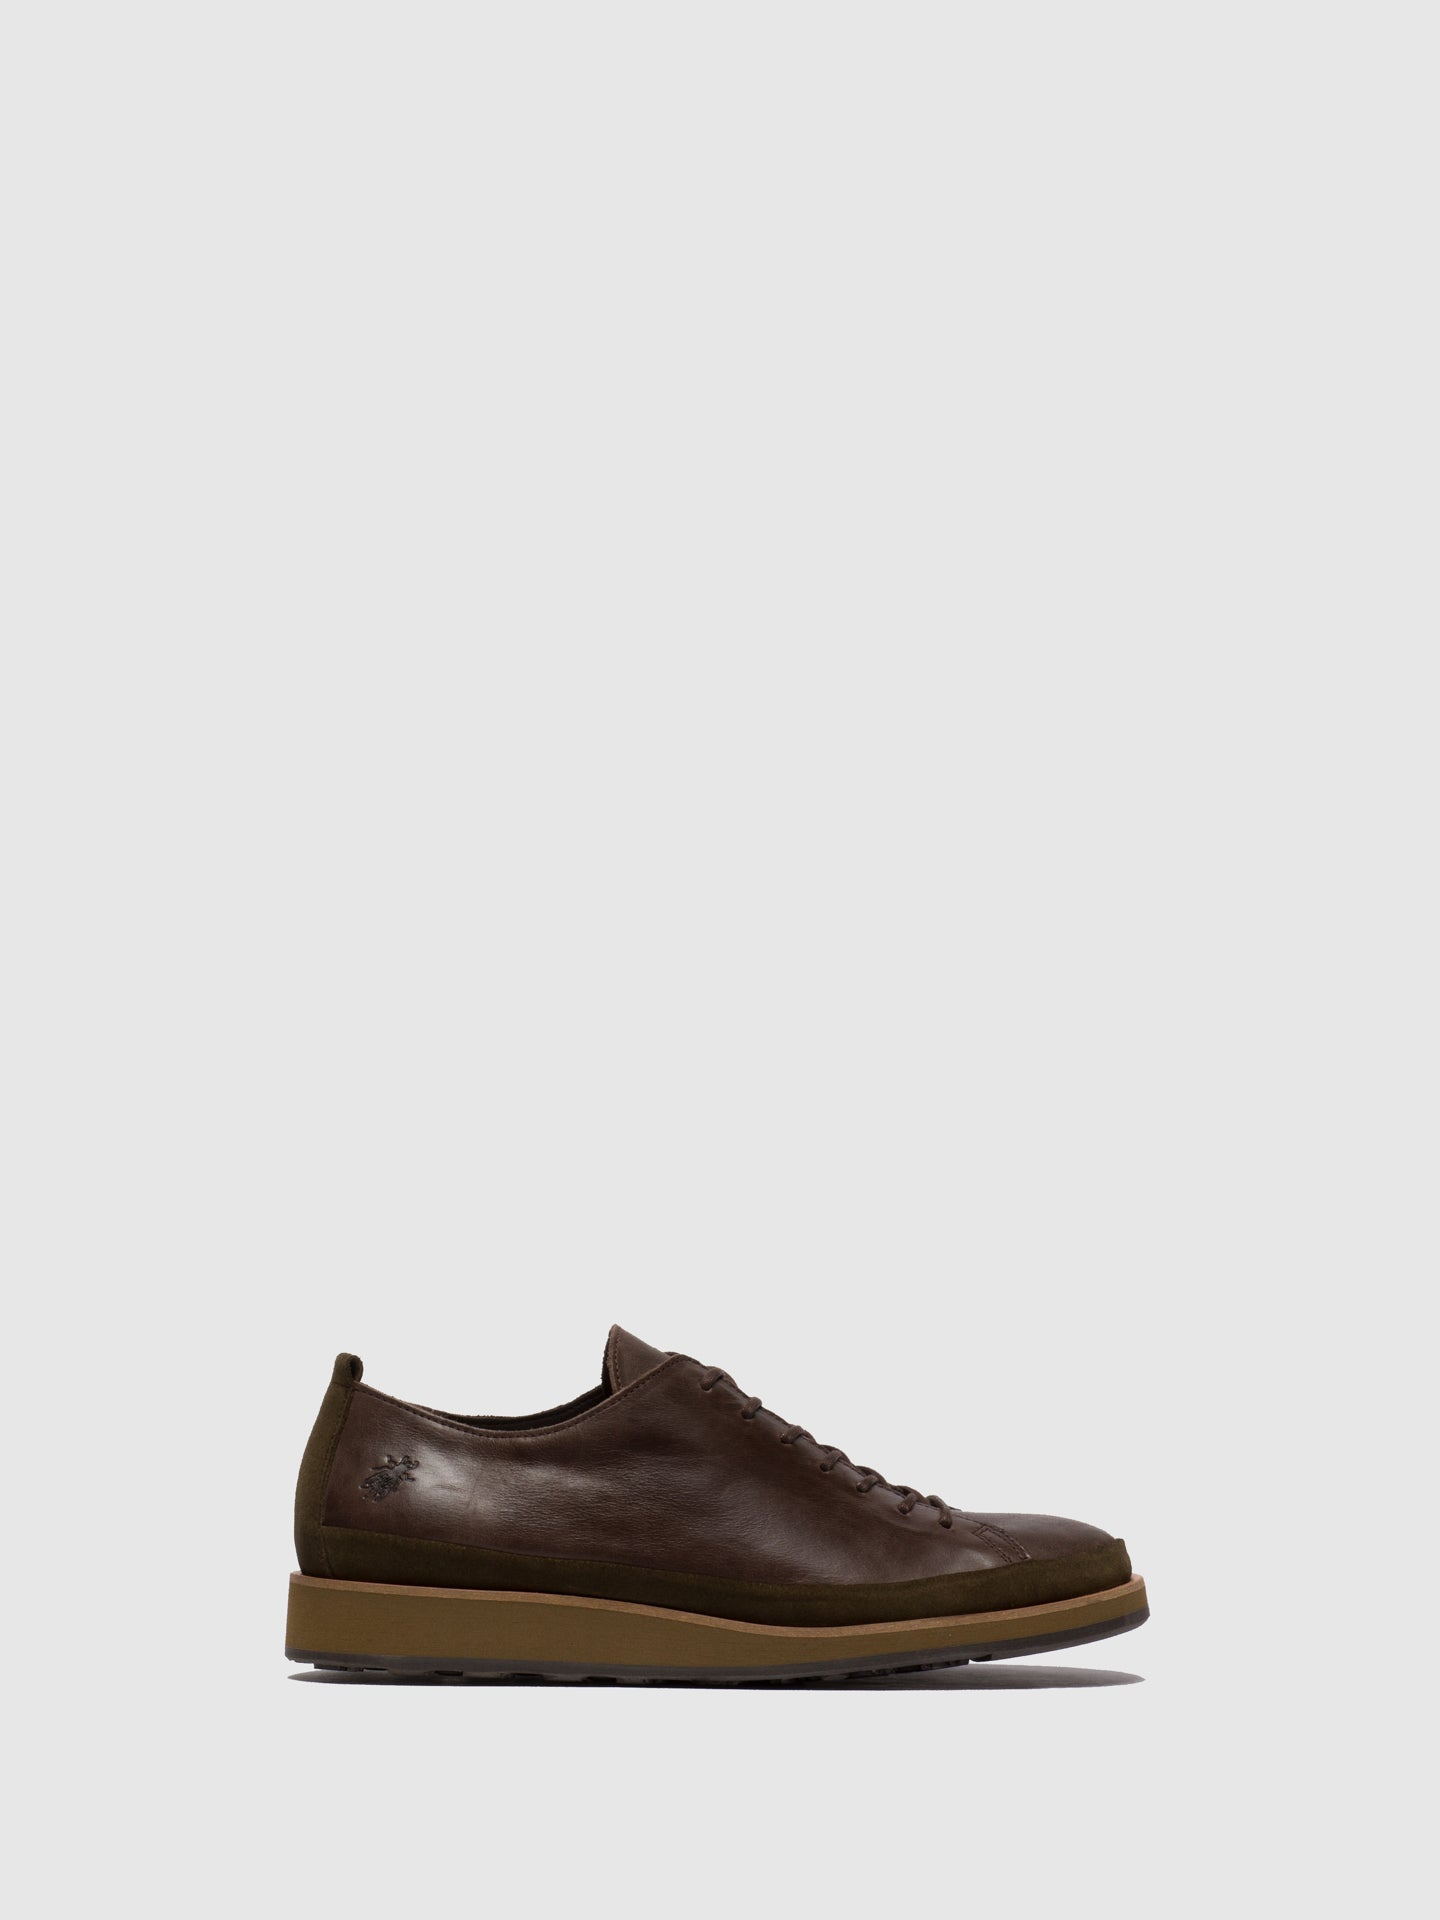 Fly London Sapatos com Atacadores JOLM691FLY ECO/OILSUEDE(VEGETAL) MOCCA/SLUDGE